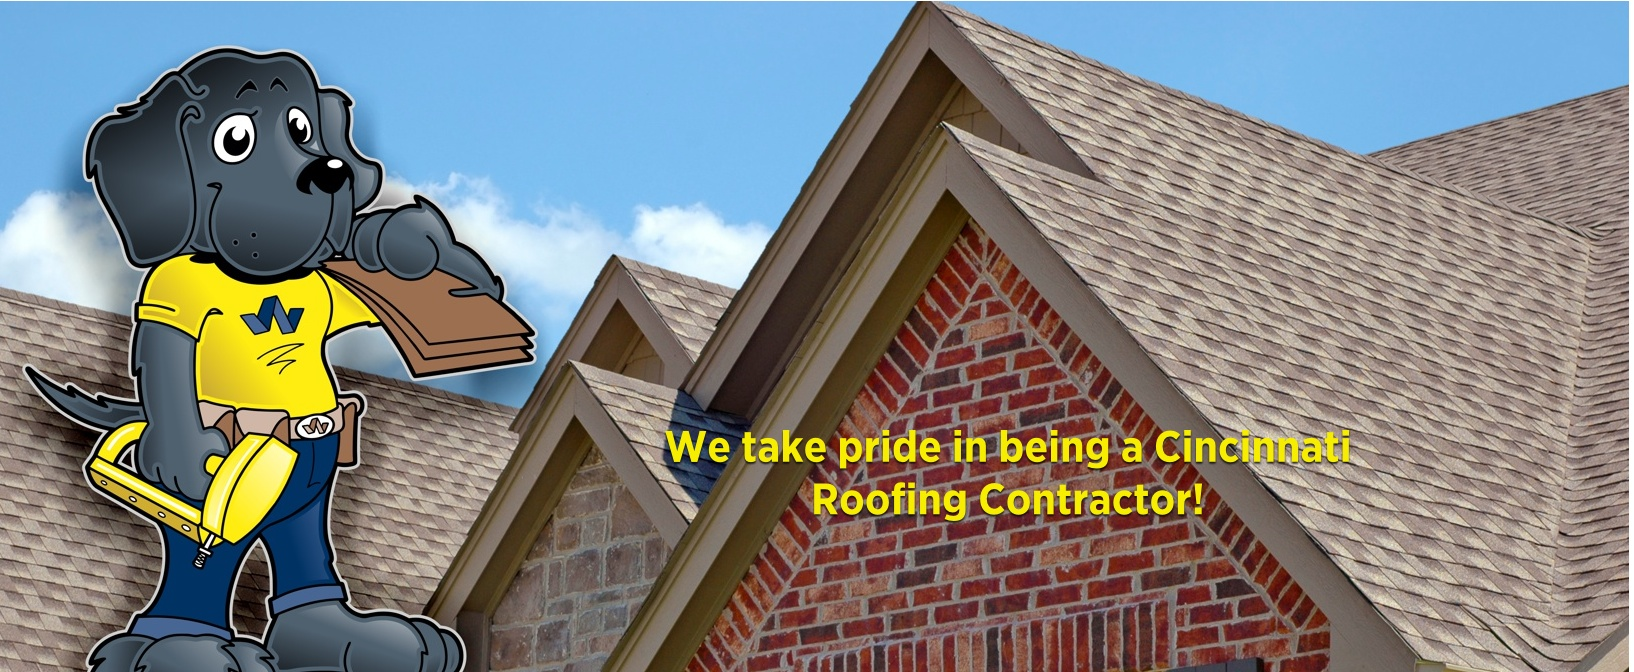 We take pride in being a Cincinnati Roofing Contractor